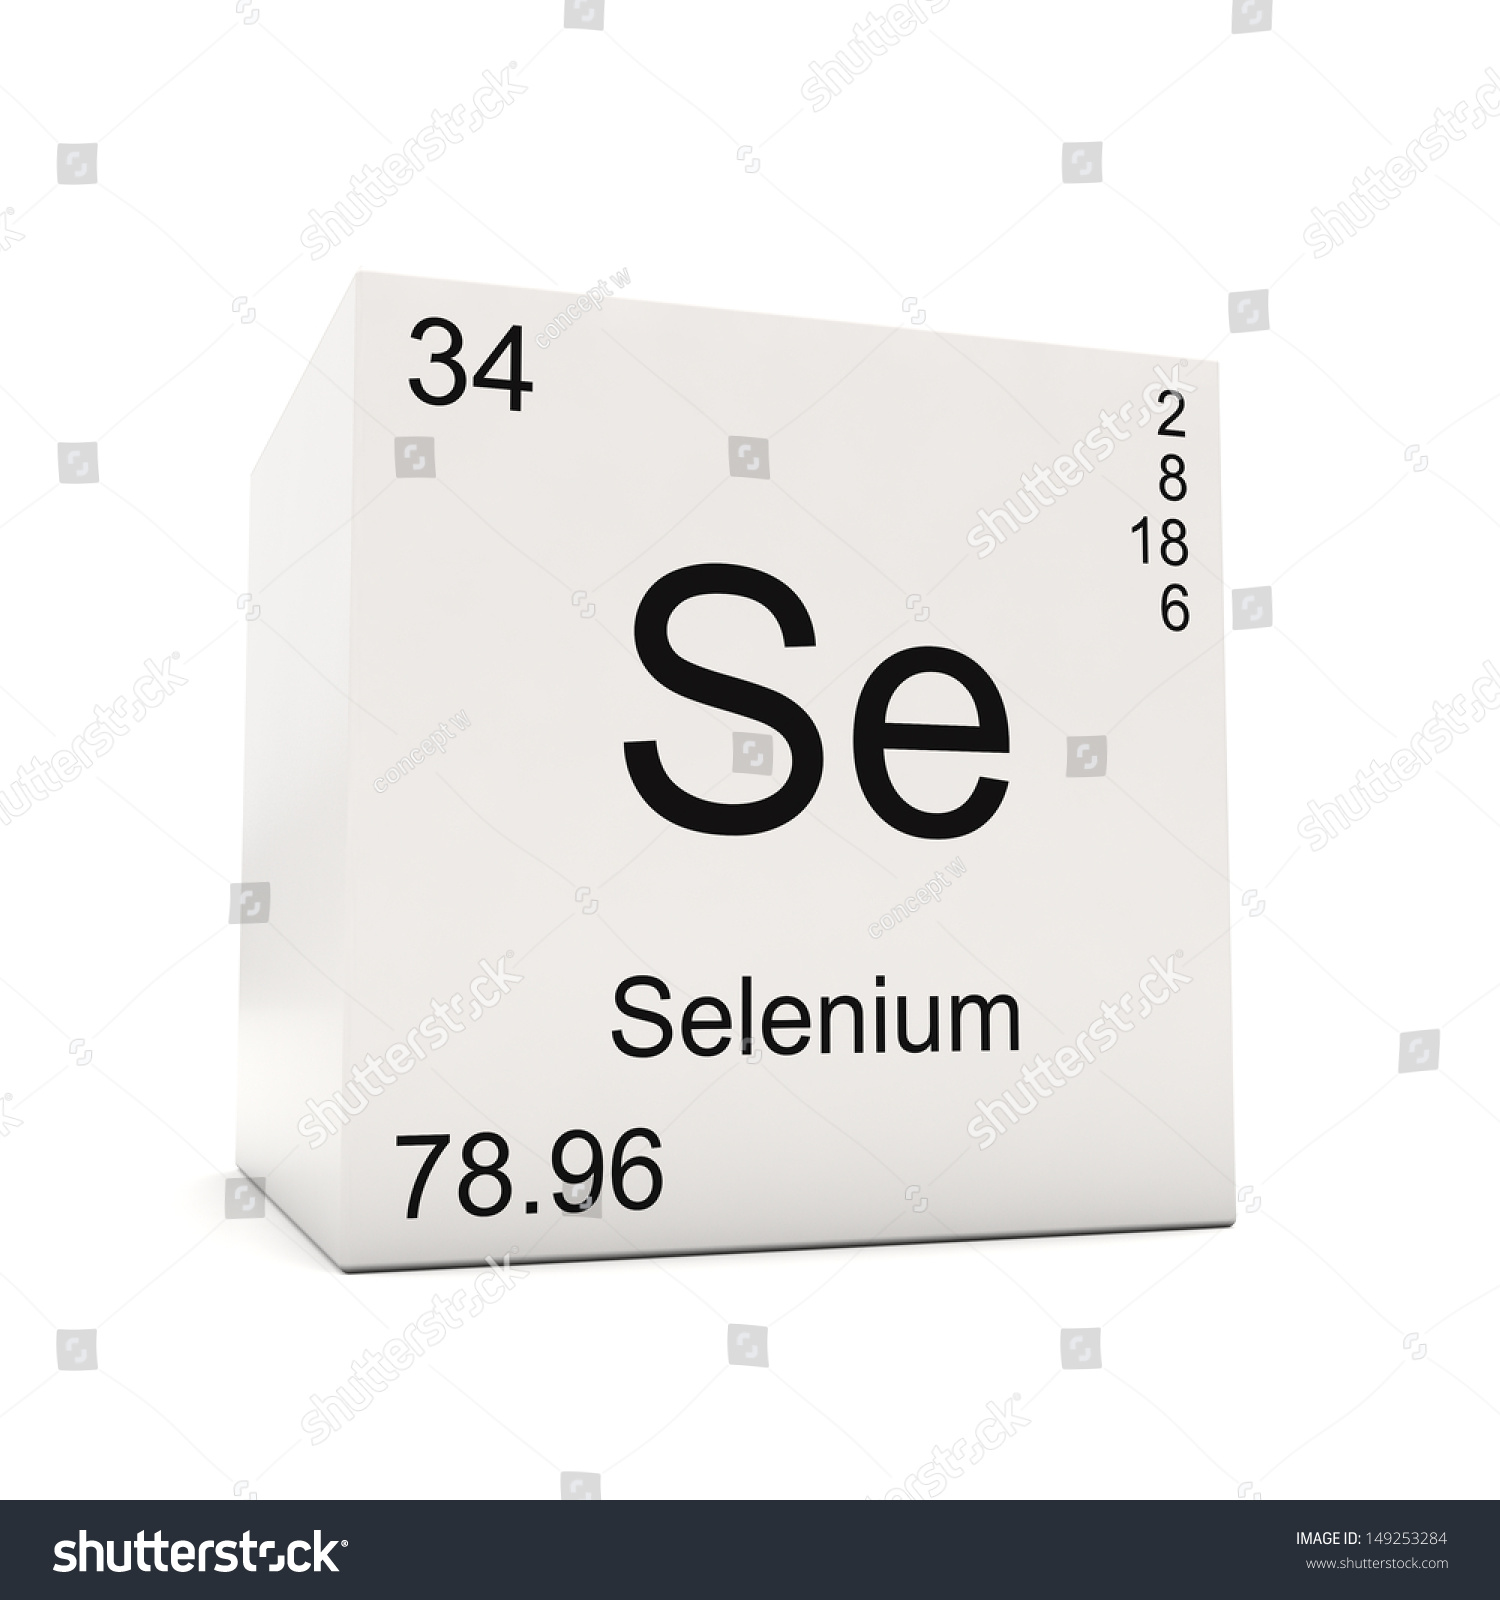 Cube selenium element periodic table isolated stock illustration cube of selenium element of the periodic table isolated on white background gamestrikefo Images